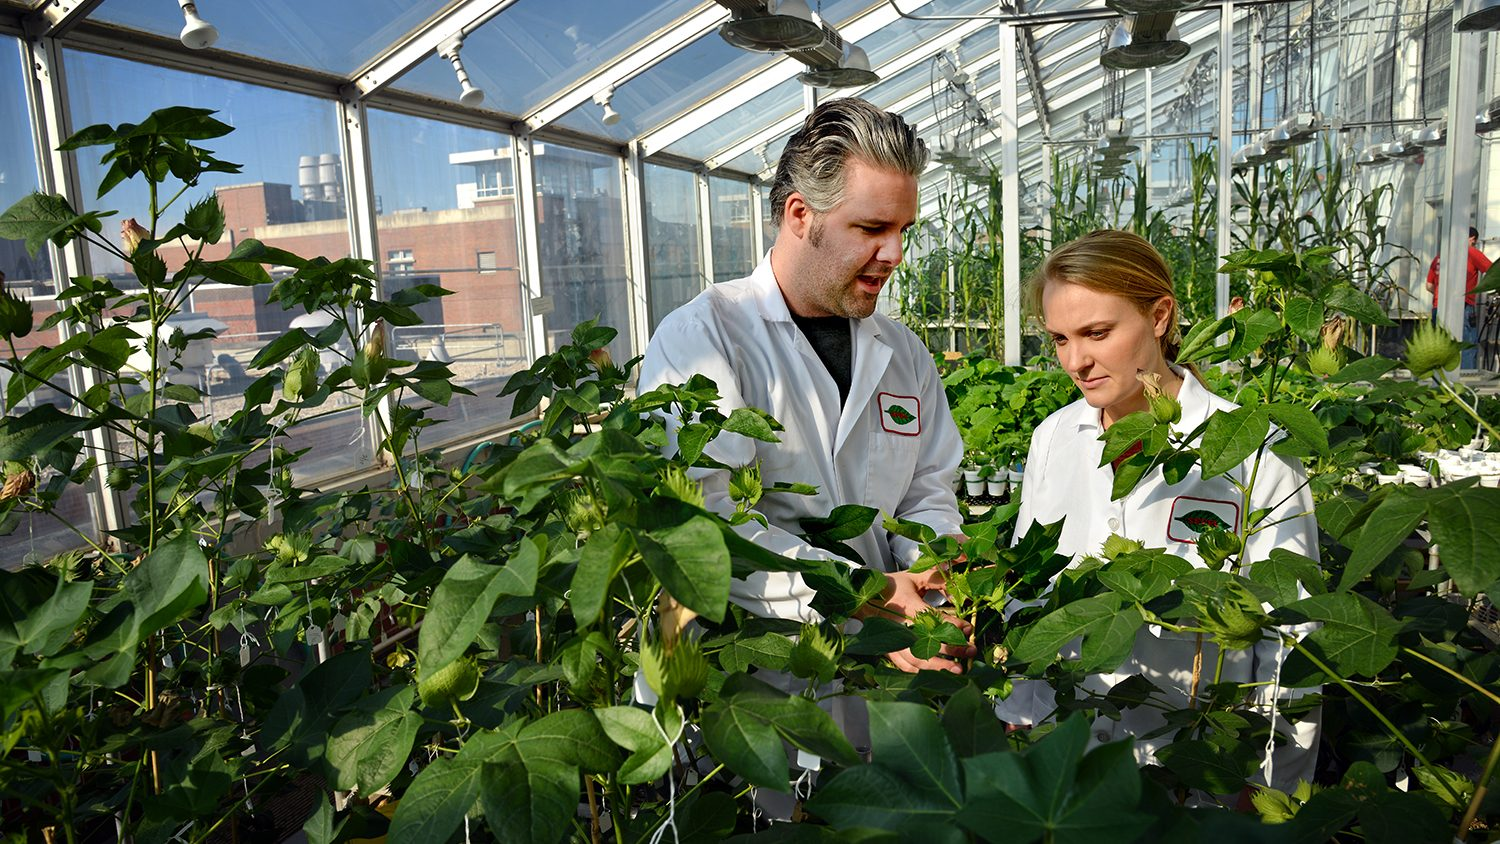 Undergraduate student (right) listens to a grad student explain cotton bolls in the Phytotron greenhouse.